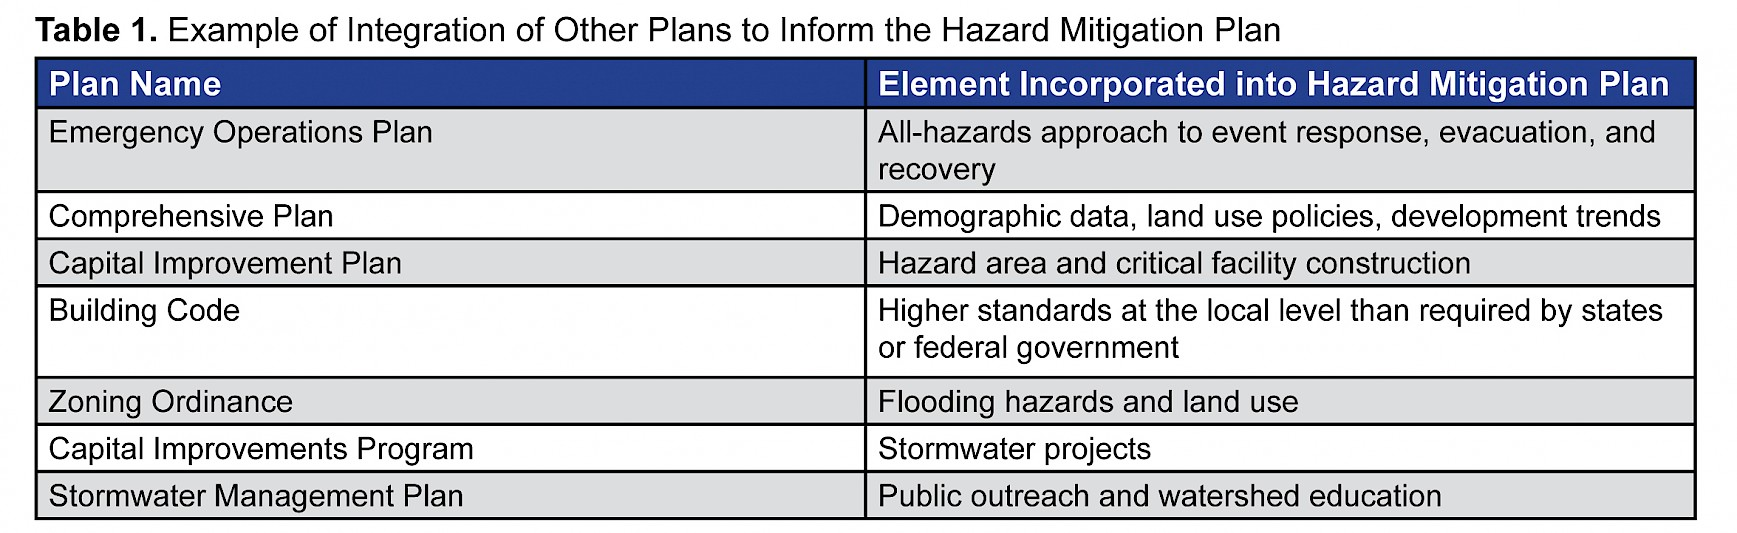 Allen King – https://www.fema.gov/media-library/assets/documents/108893Table 1. Example of Integration of Other Plans to Inform the Hazard Mitigation Plan